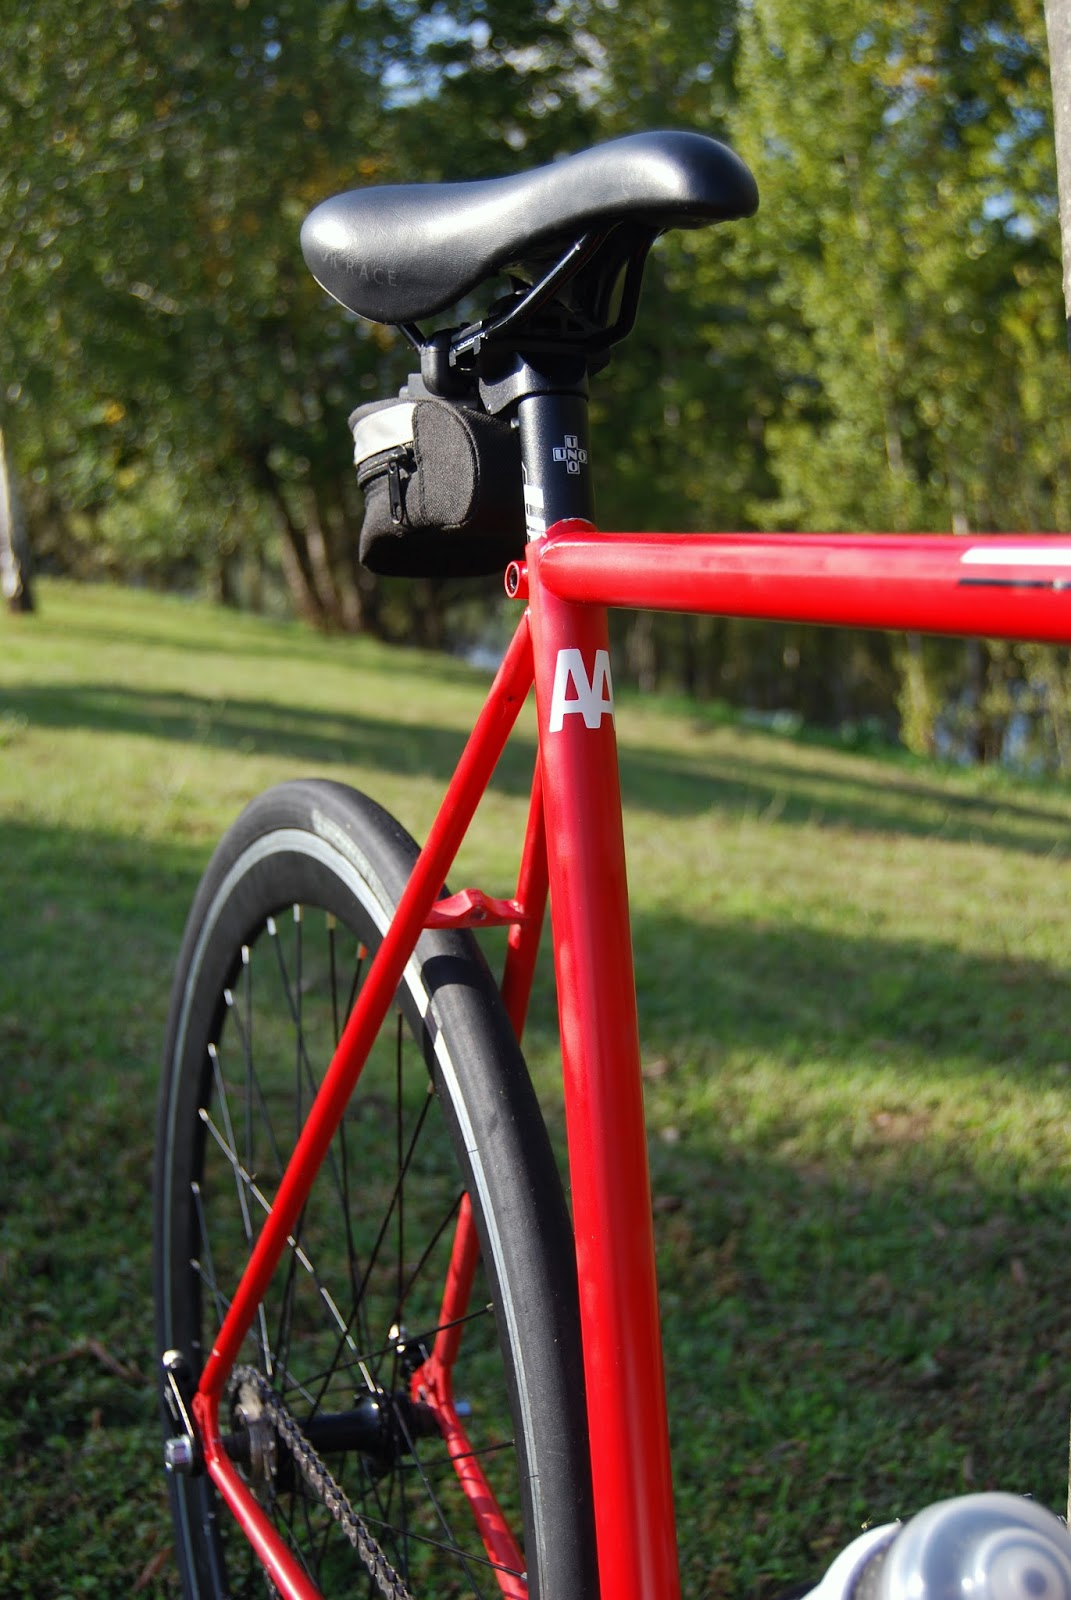 The Fixed Gear World: #newLife | Super BH L3000 AA by Marcos "|1071|1600|?|en|2|9938ac8d8e1a5faa54130d7a62156f2c|False|UNLIKELY|0.3170085549354553